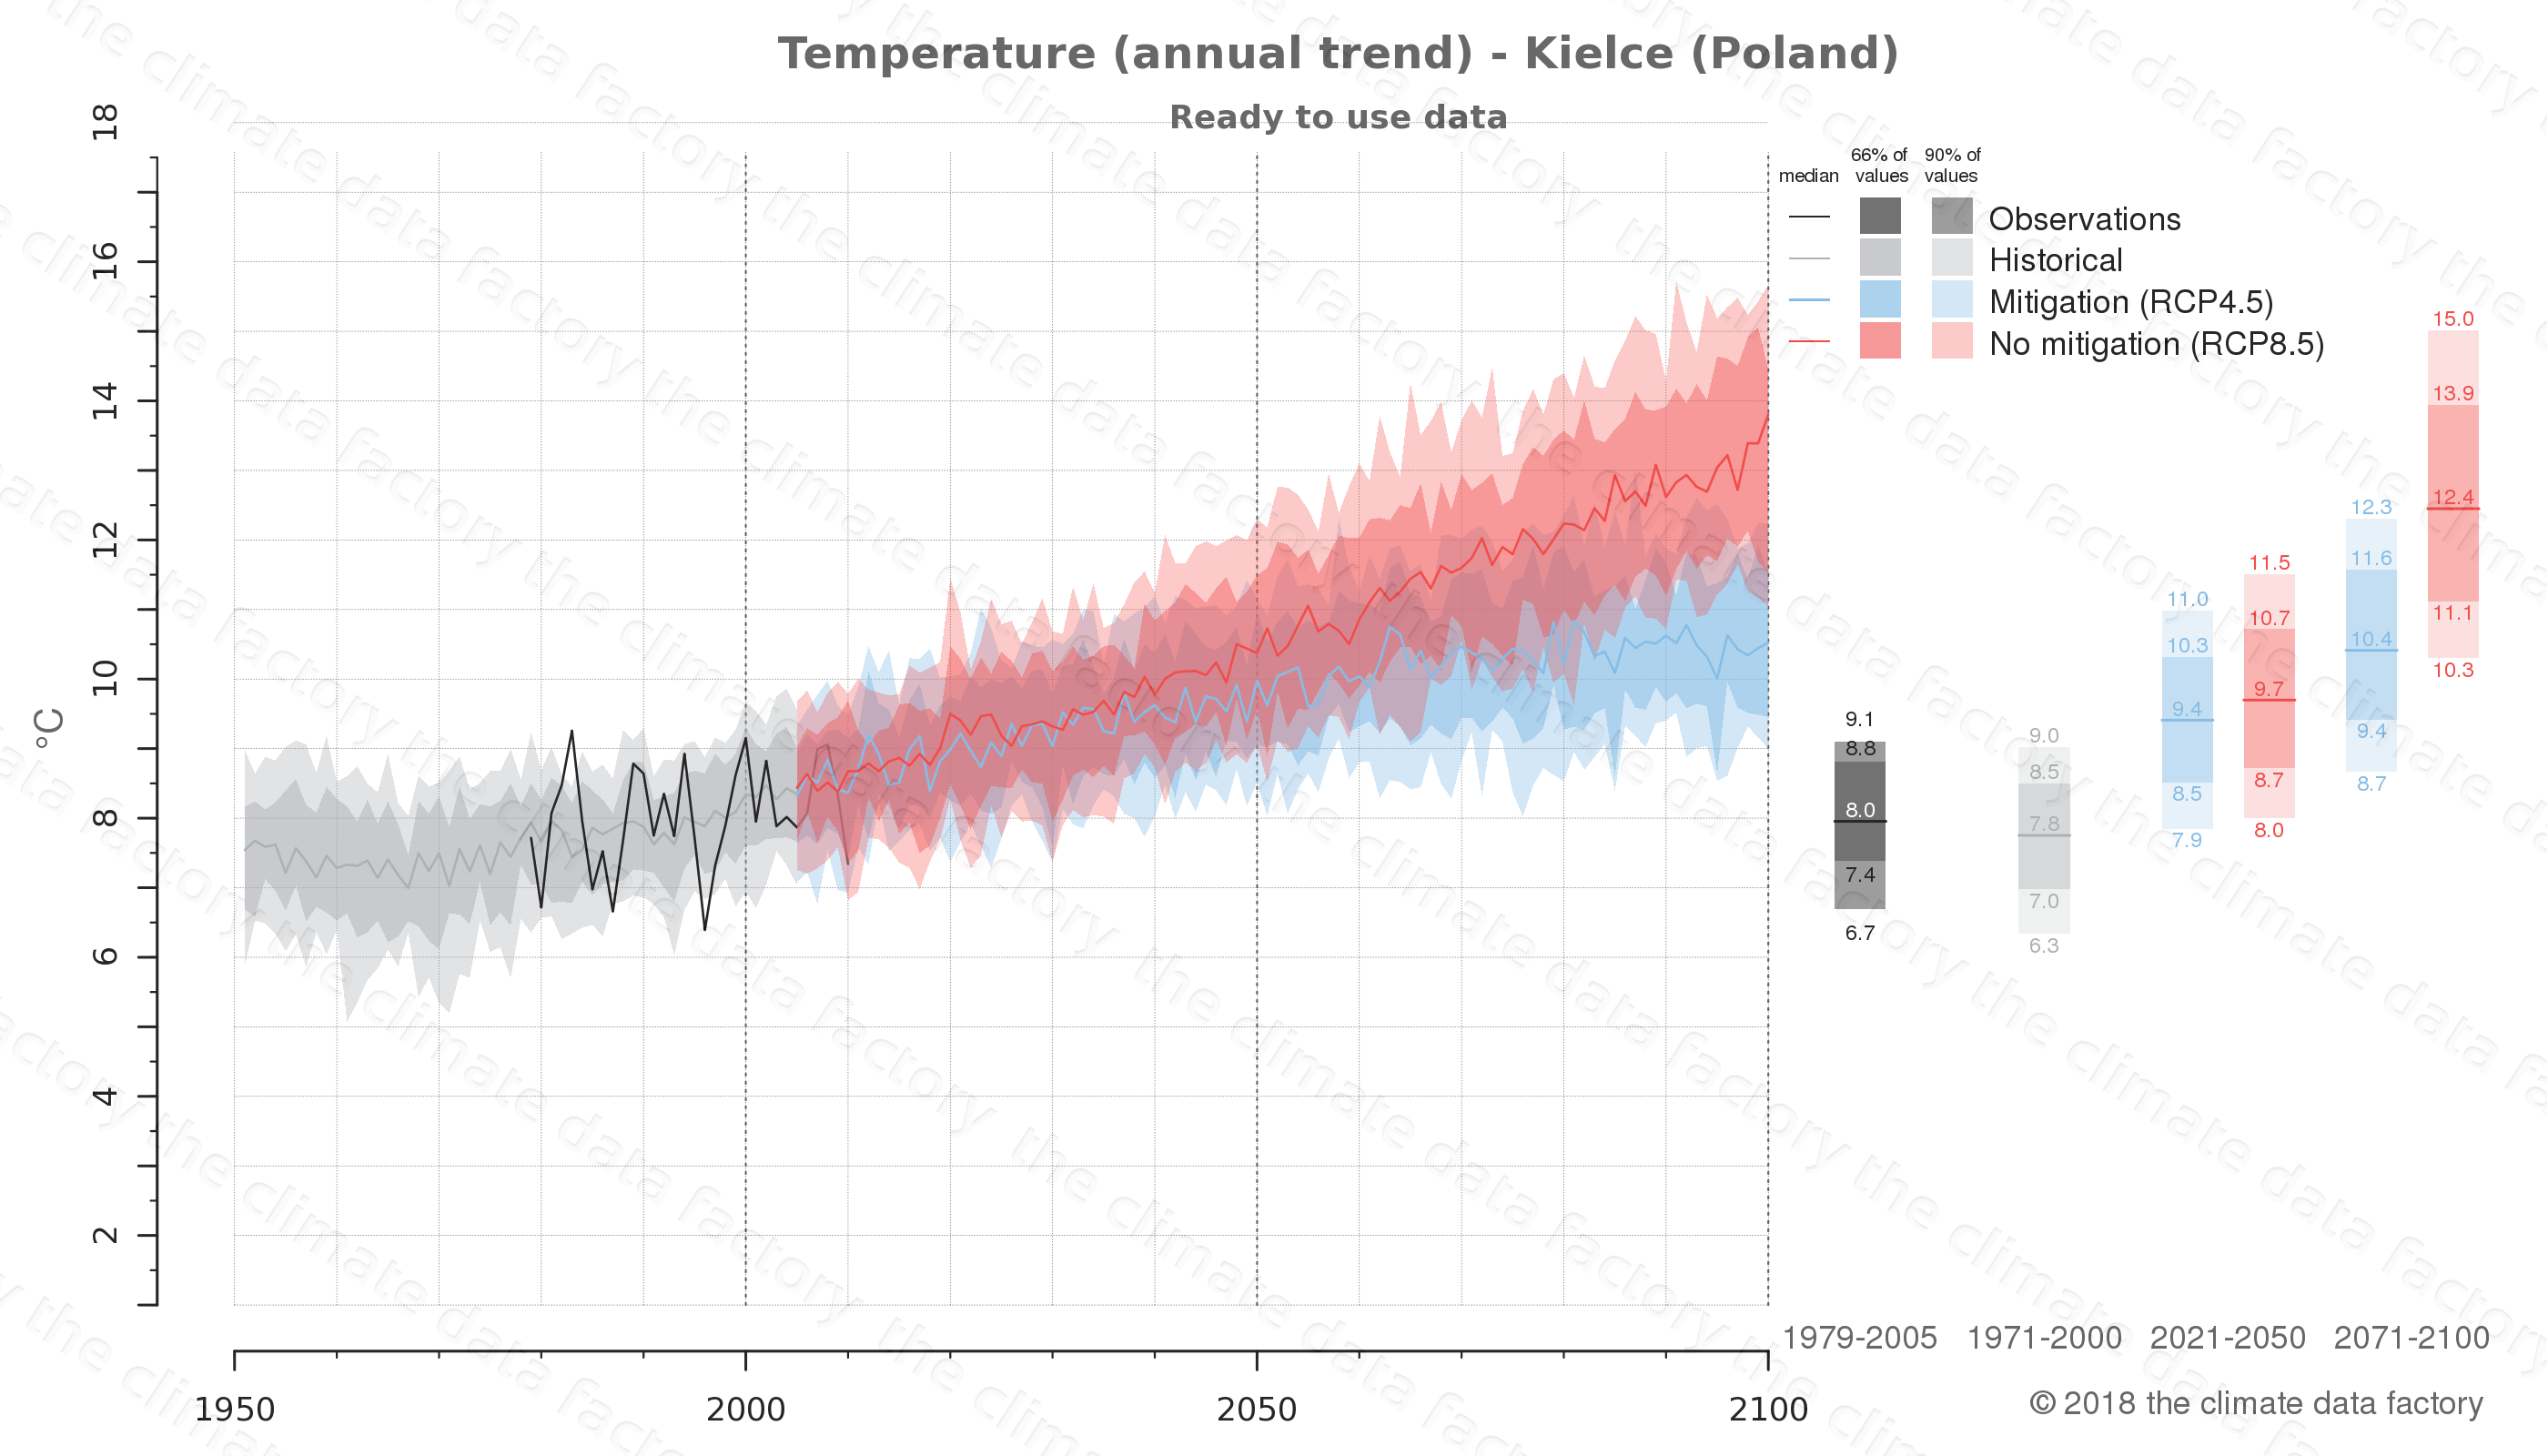 climate change data policy adaptation climate graph city data temperature kielce poland